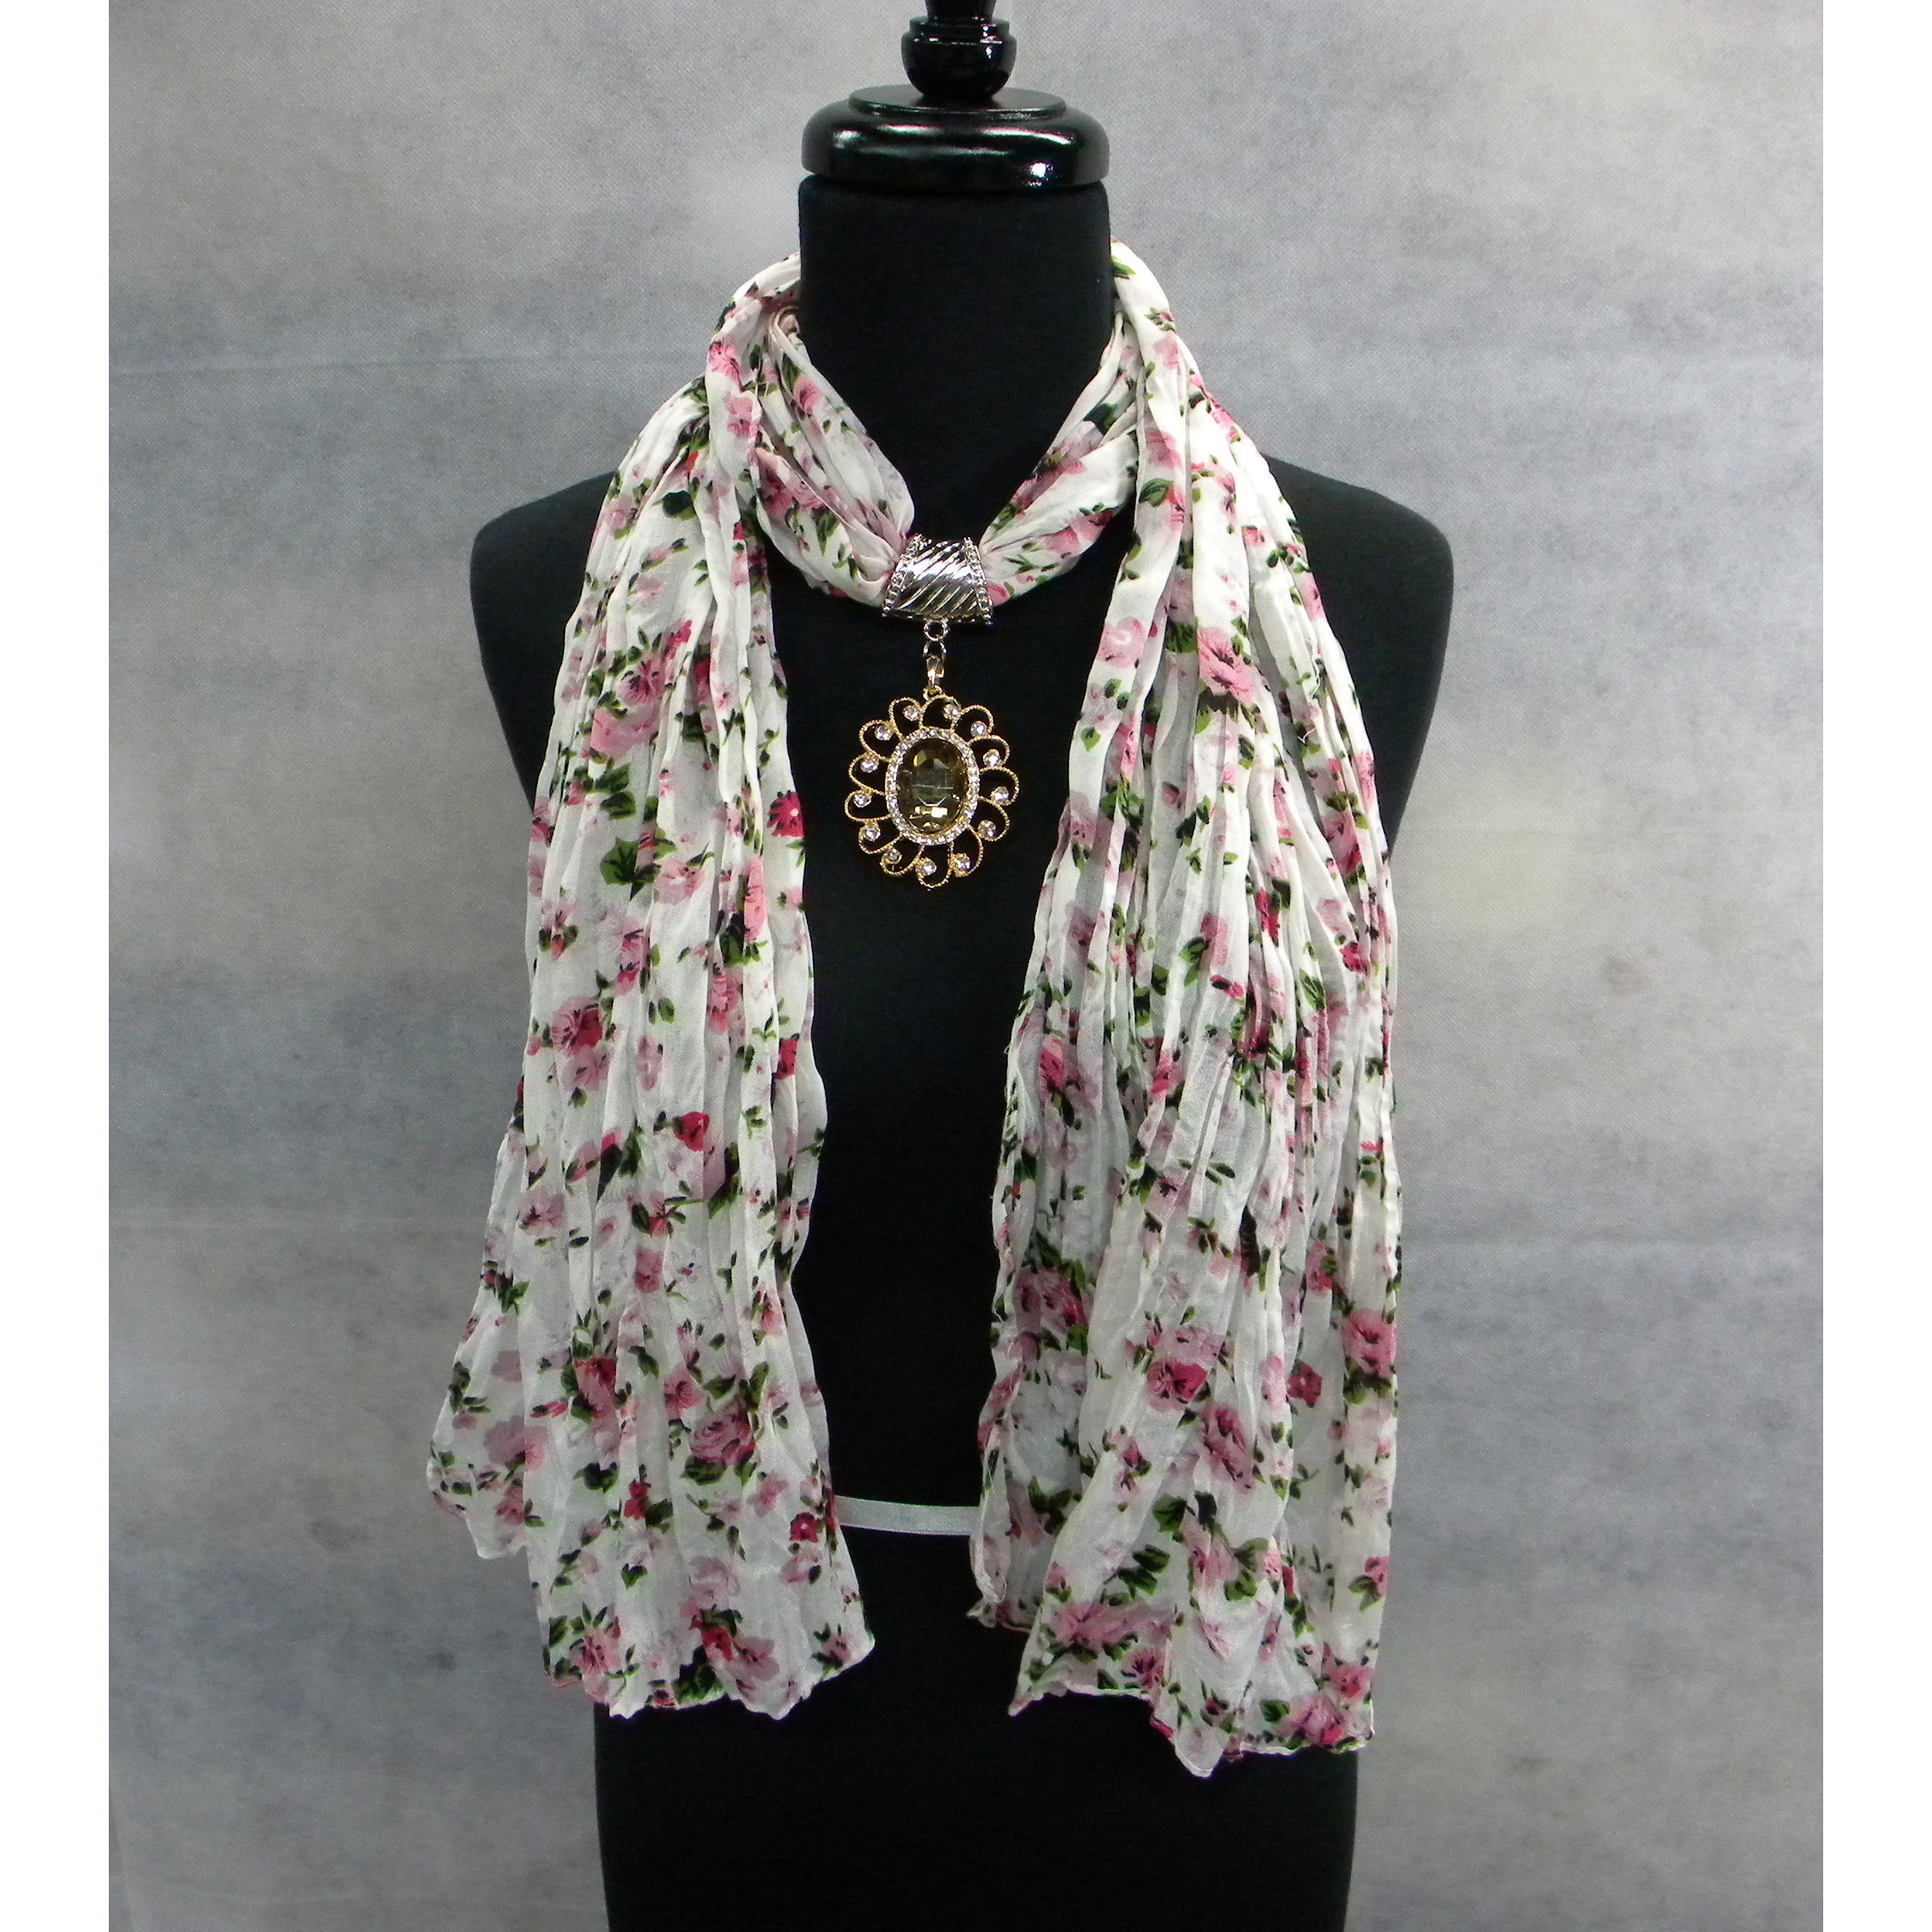 Multi-colored Floral Print Jewelry Scarf